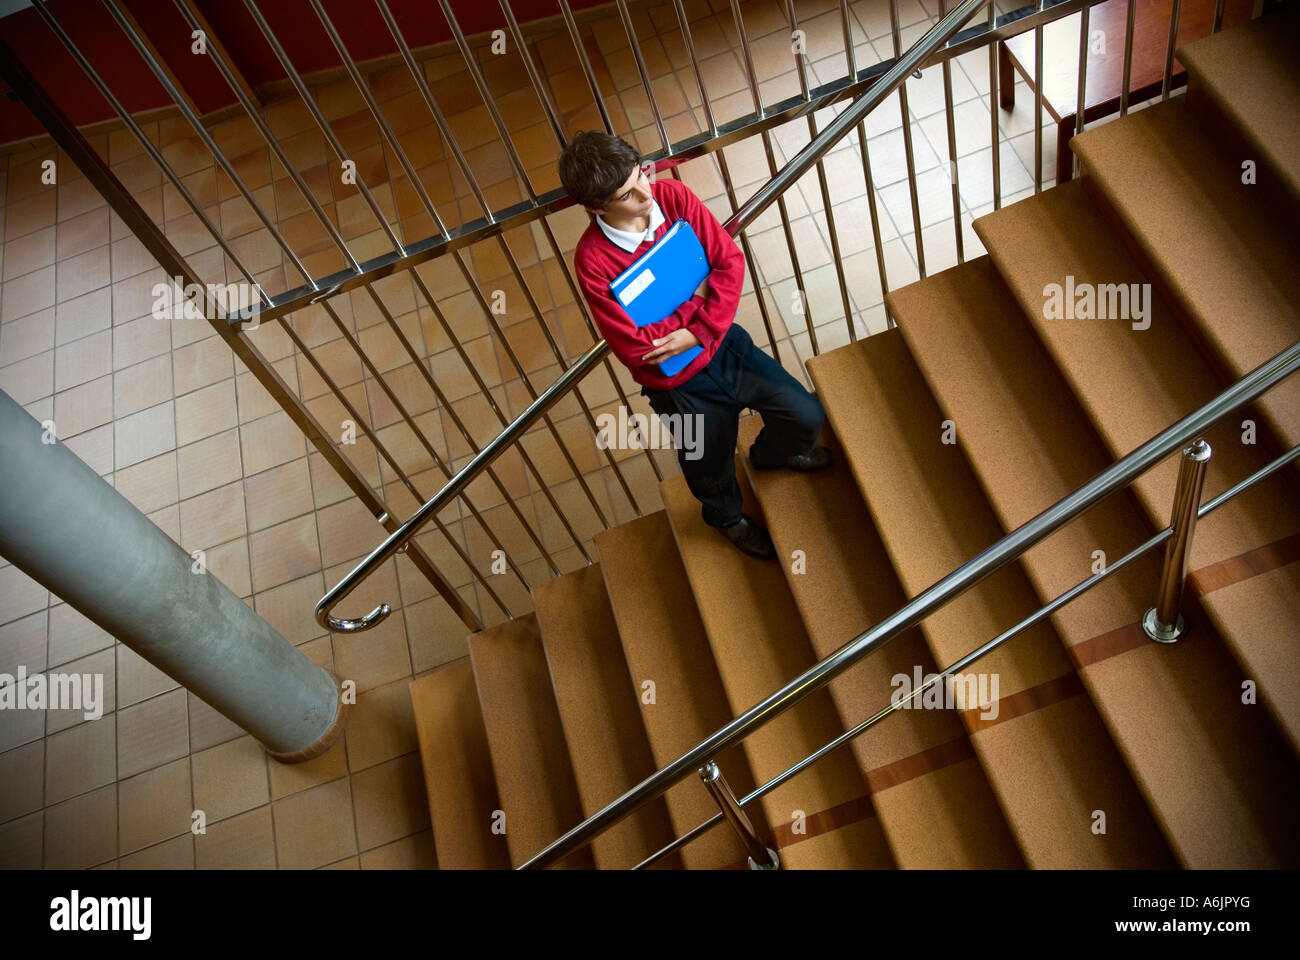 Junior schoolboy with school class study folder standing alone in school stairwell - Stock Image